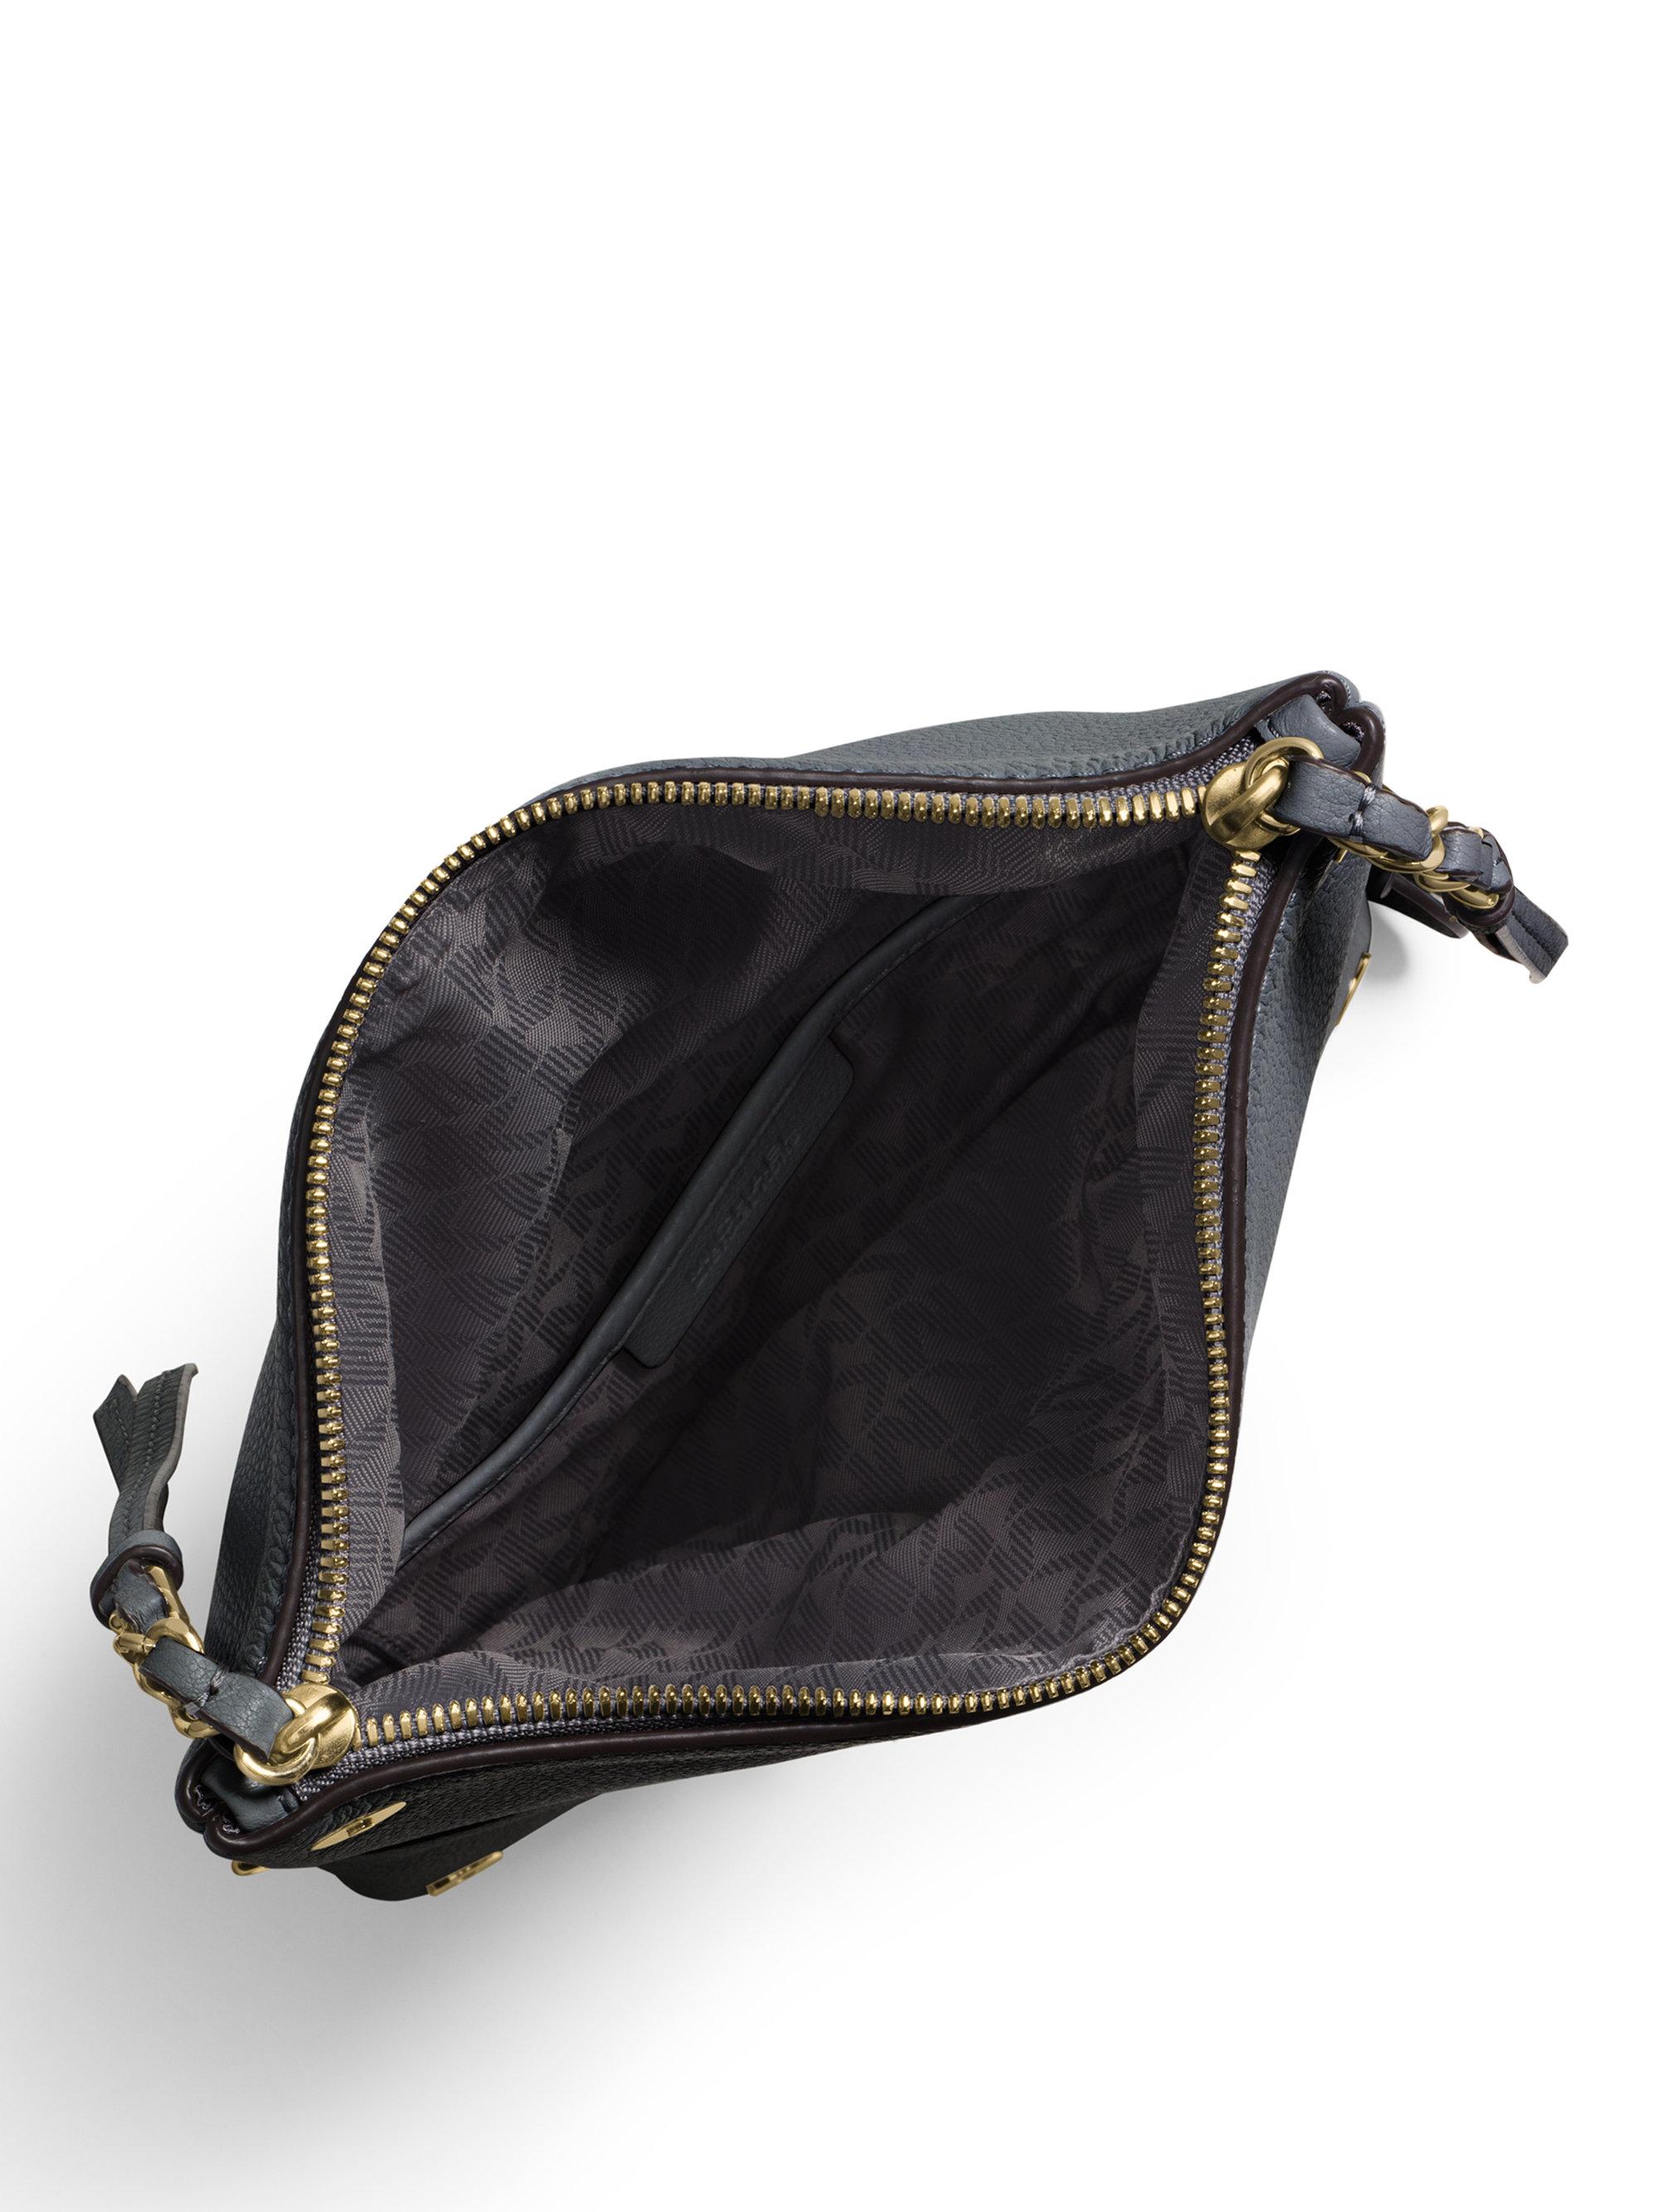 37a18117b5f3 Gallery. Previously sold at  Saks Fifth Avenue · Women s Leather Messenger  Bags ...